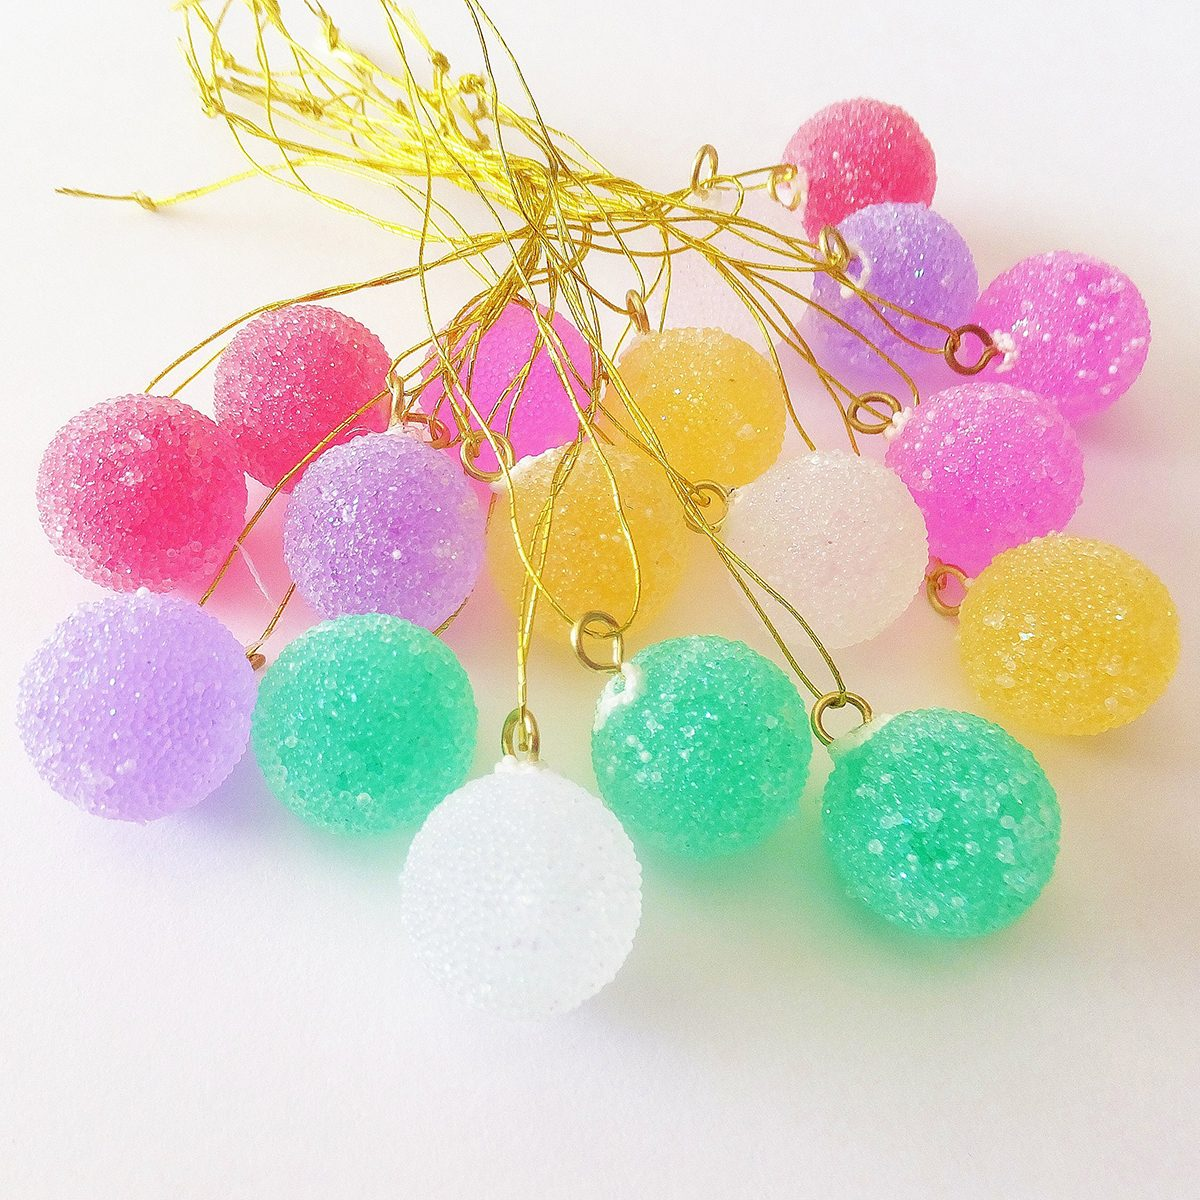 Gum Drops Pastel Ornaments ~ Candyland Tree ~ Fairy Garden, Putz & Doll House ~ Craft Supply ~ Christmas Gingerbread House Decor ~ 18ct.